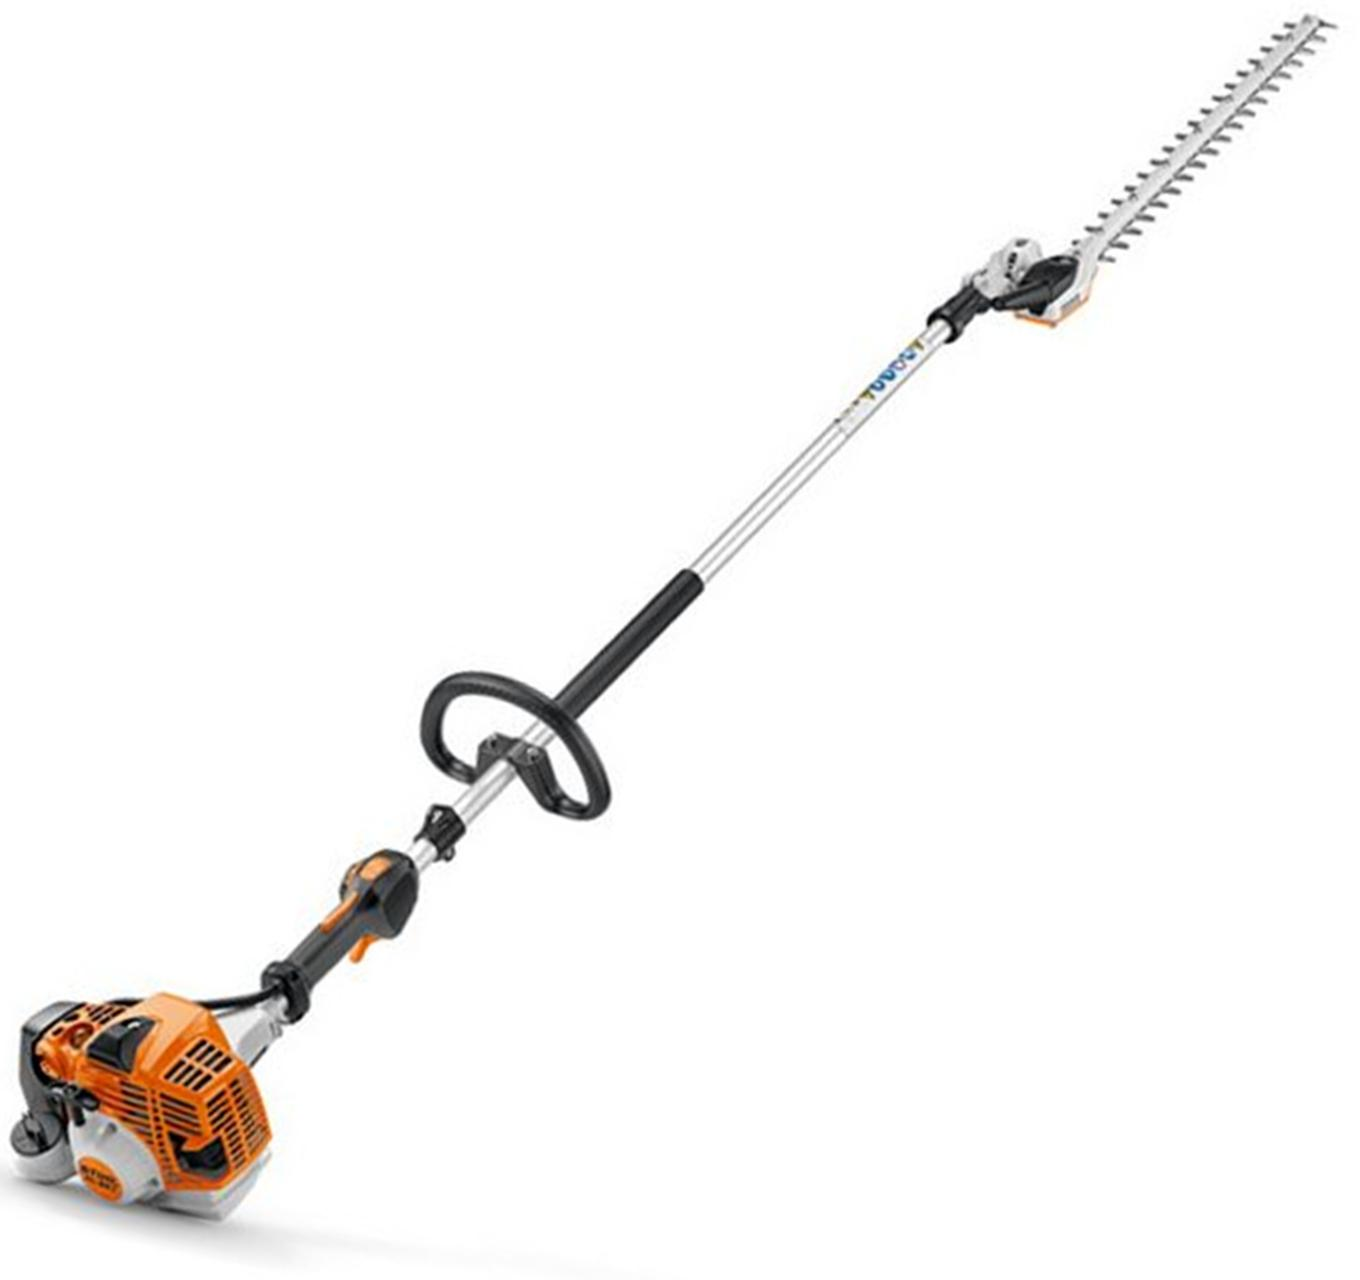 HL 94 C-E Hedge Trimmer